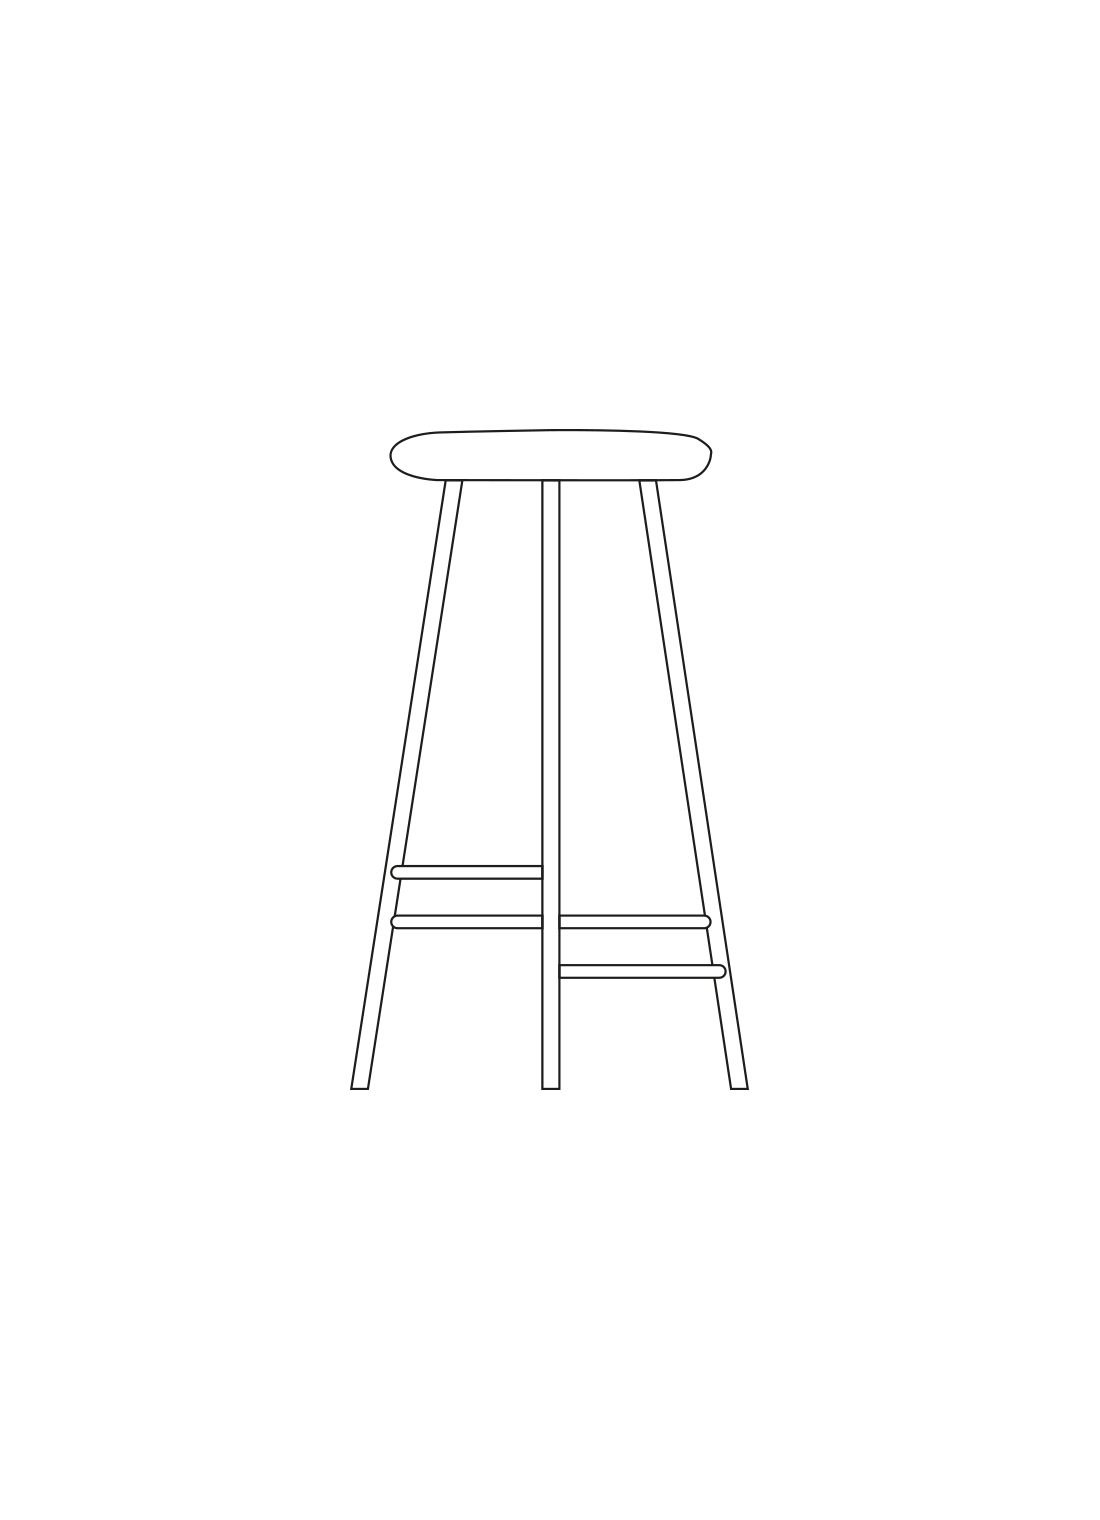 Pebble stool illustration